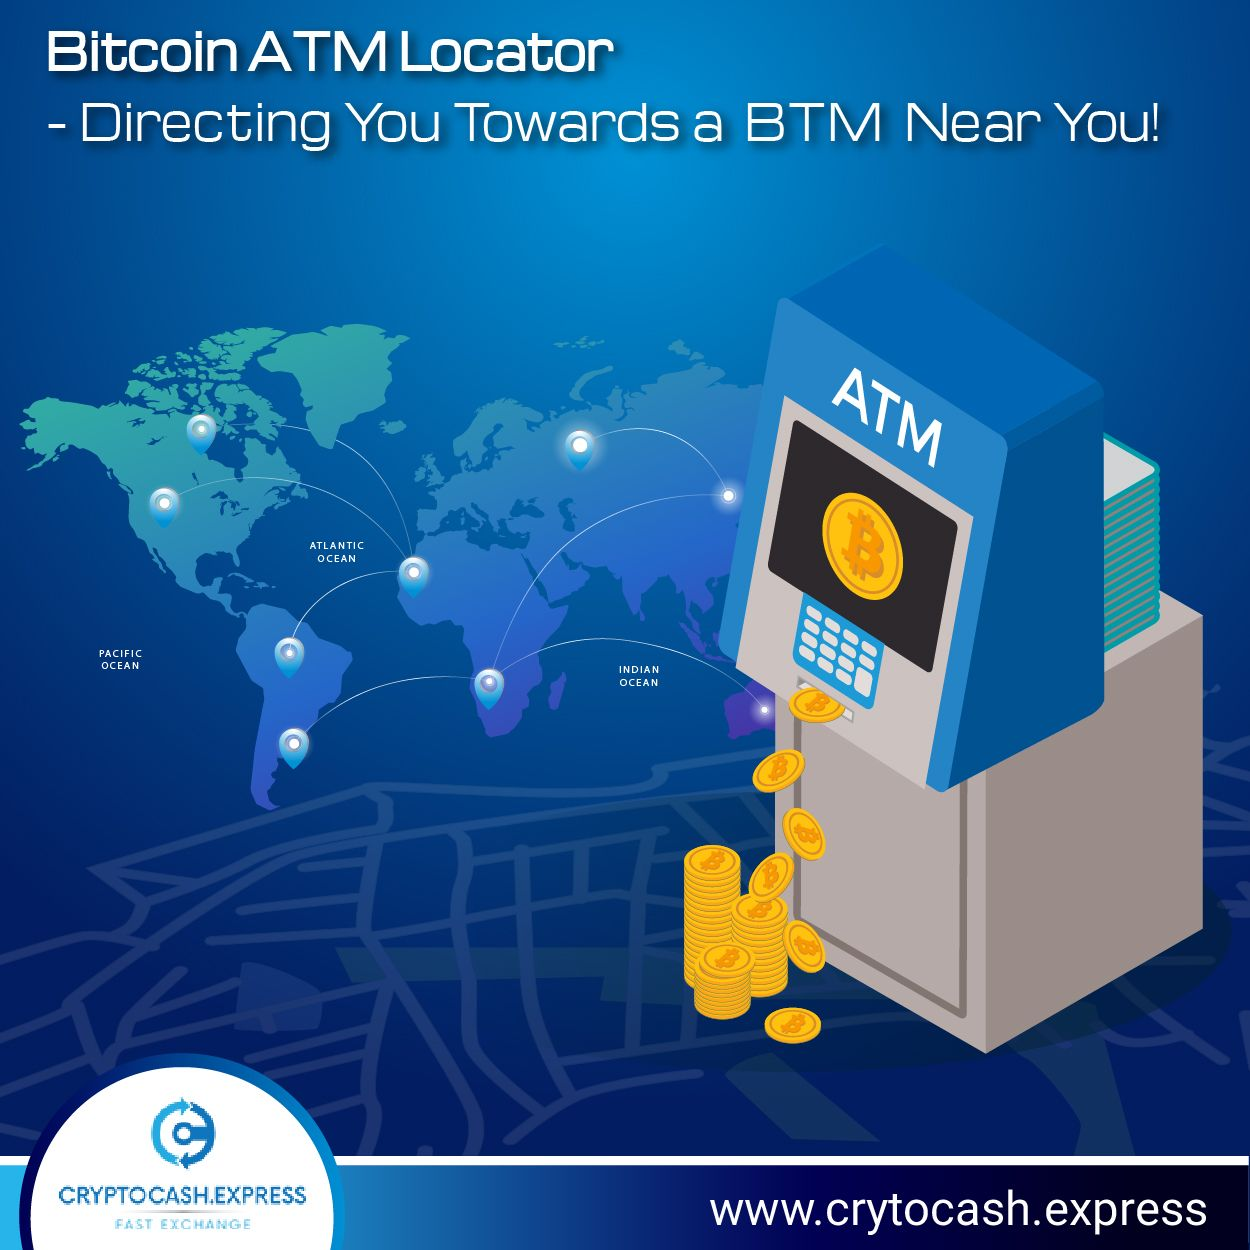 Click on www Cryptocash Express to find Bitcoin ATM in your